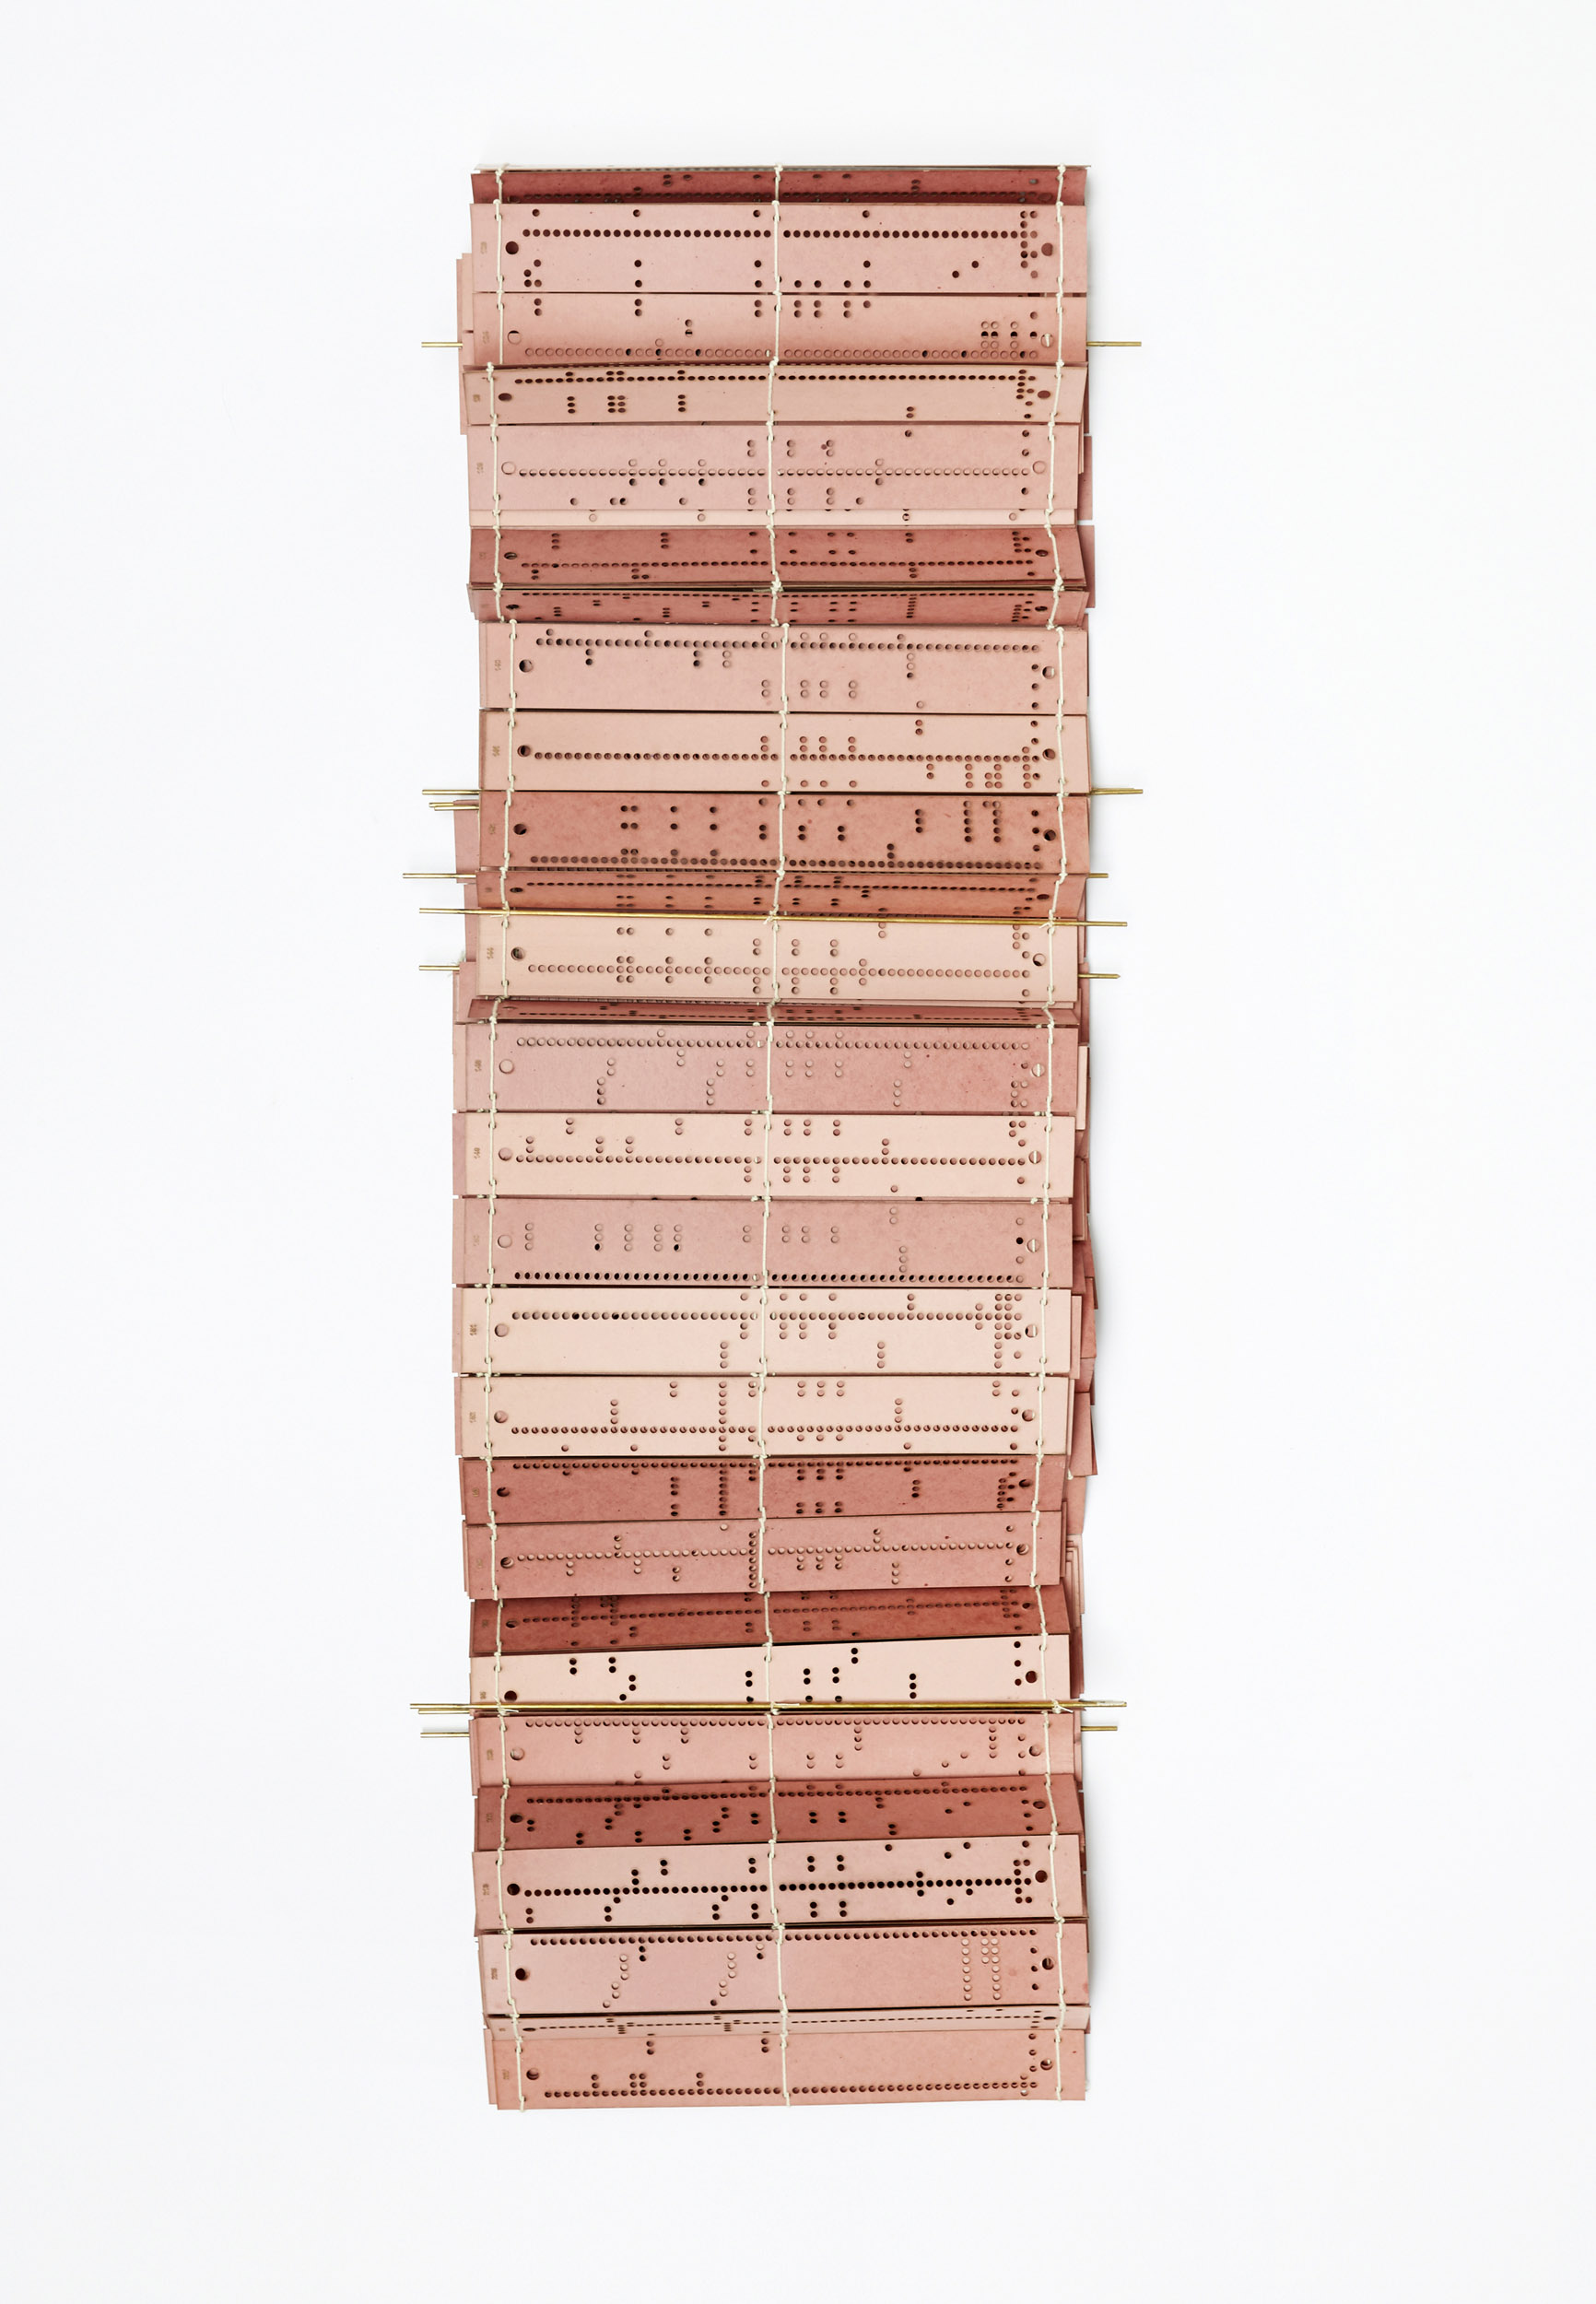 A weaving book of punched cards used for a Jacquard Loom